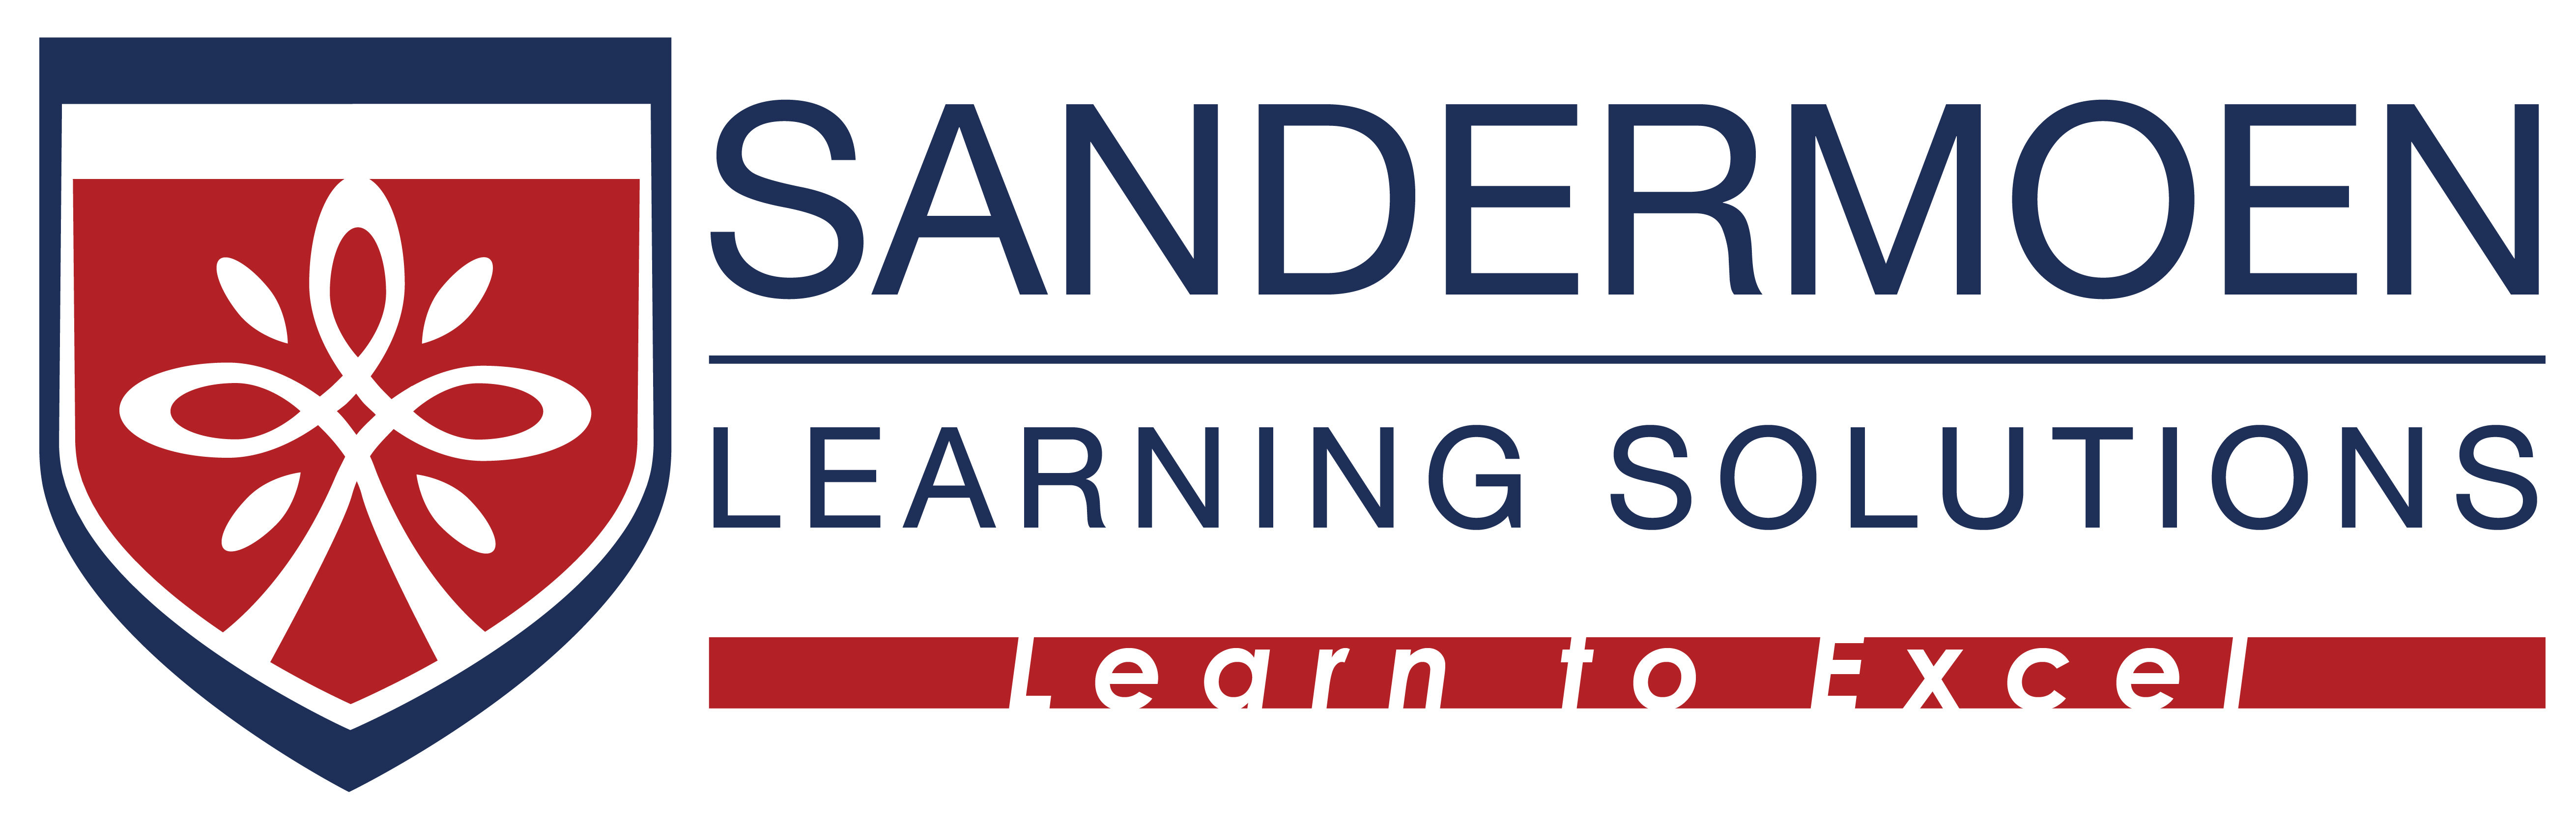 Sandermoen Learning Solutions